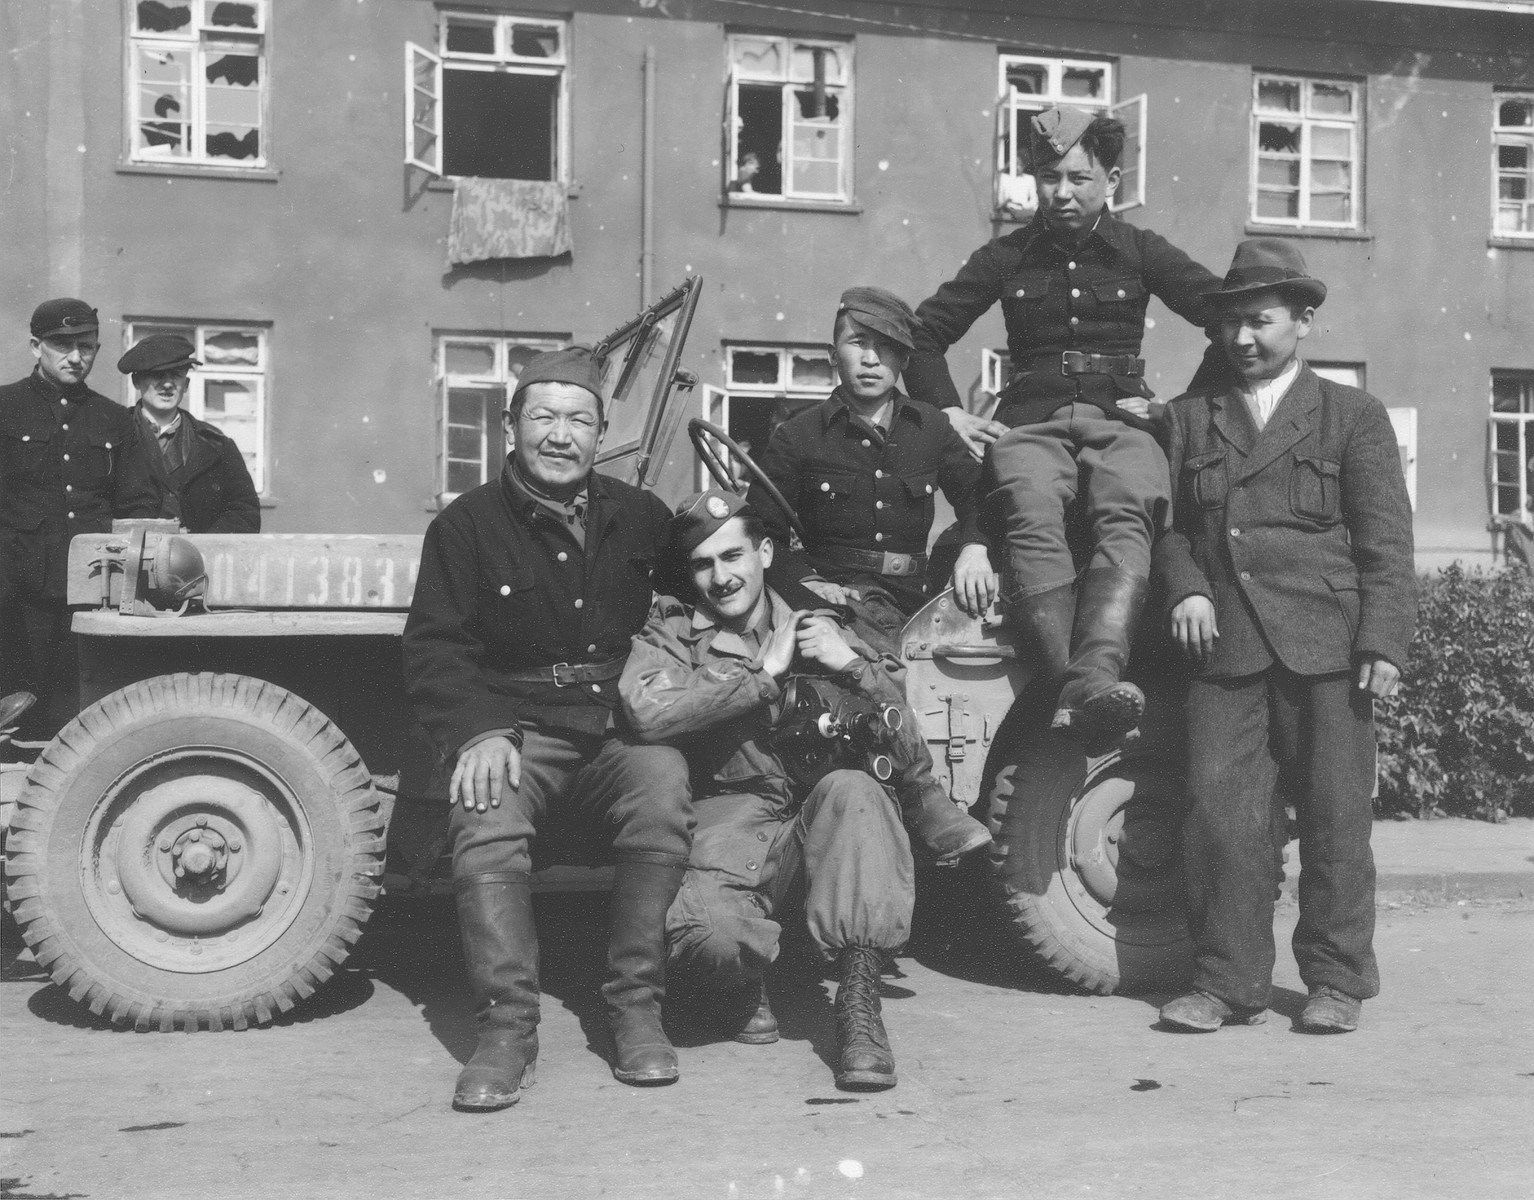 American military photographer Fred Frater poses with Russian soldiers in front of a jeep at their military base in Germany.